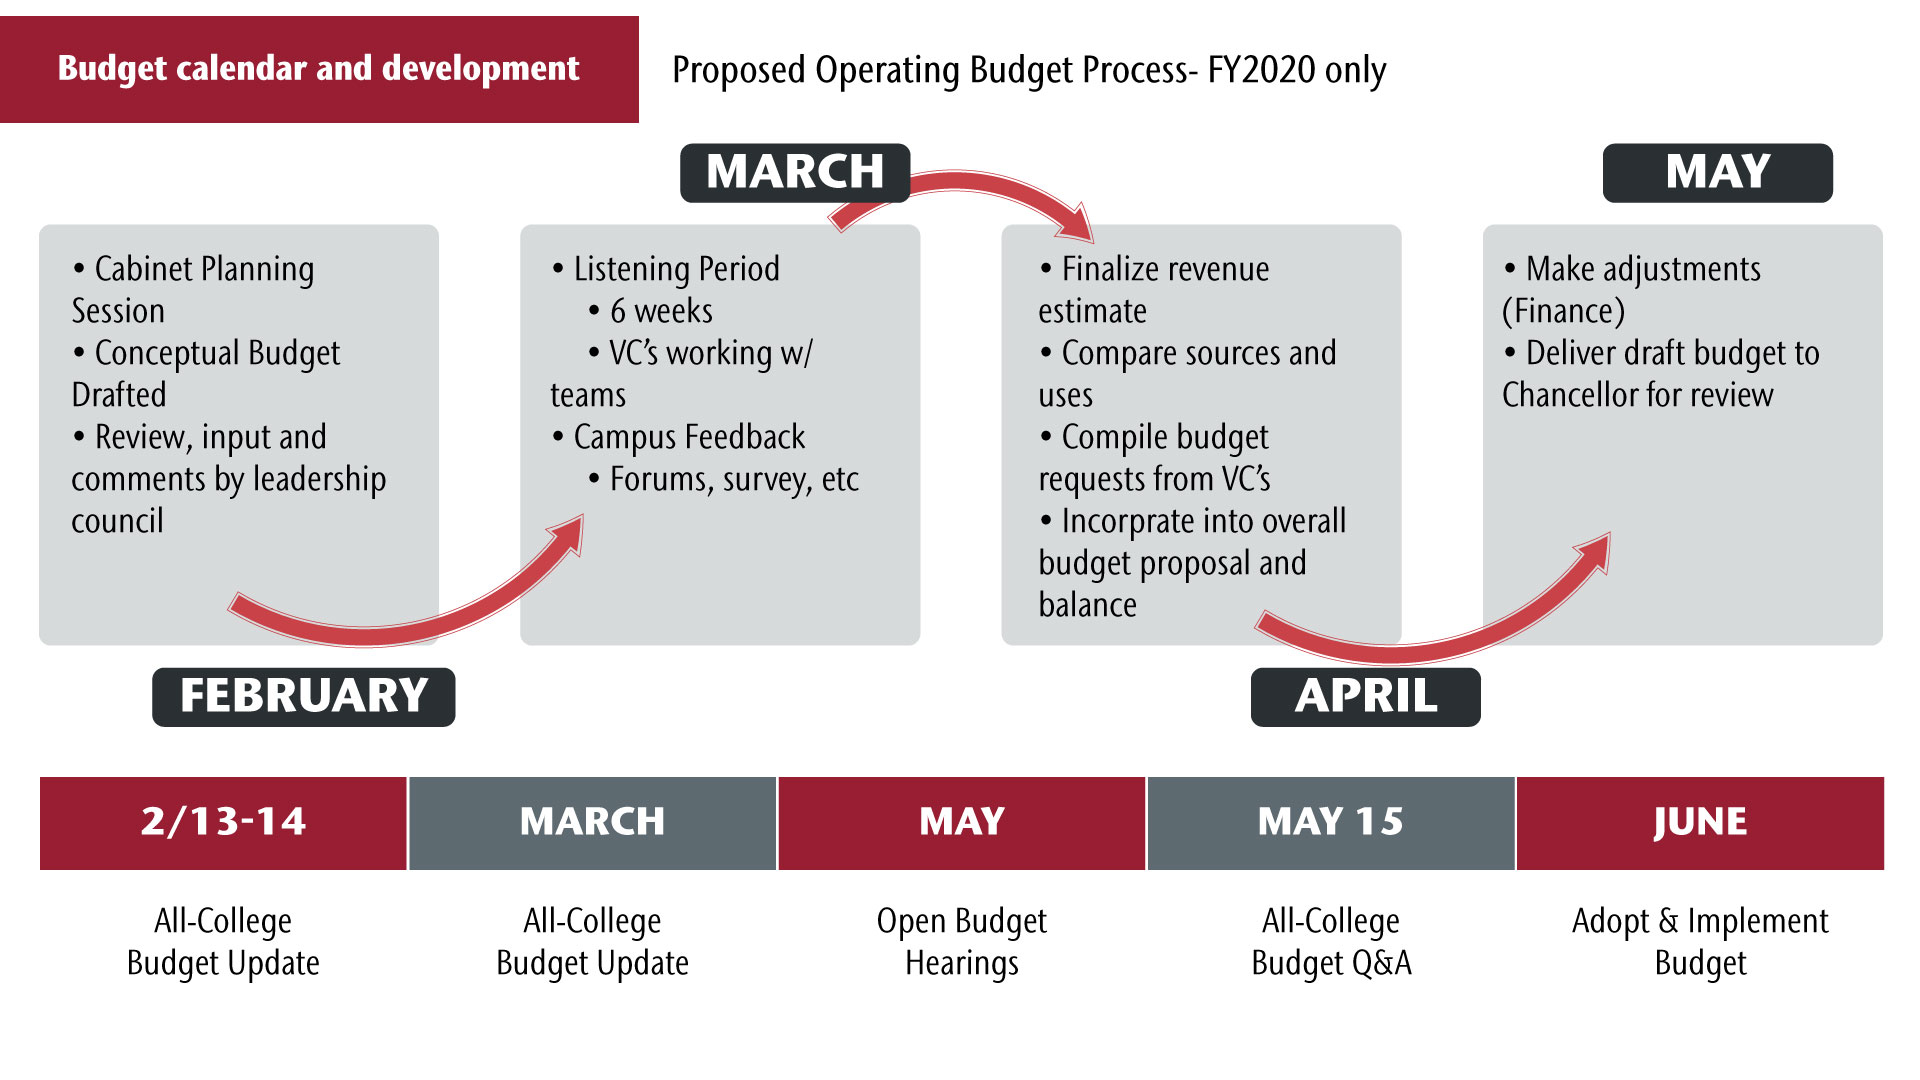 Proposed Operating Budget Process Timeline